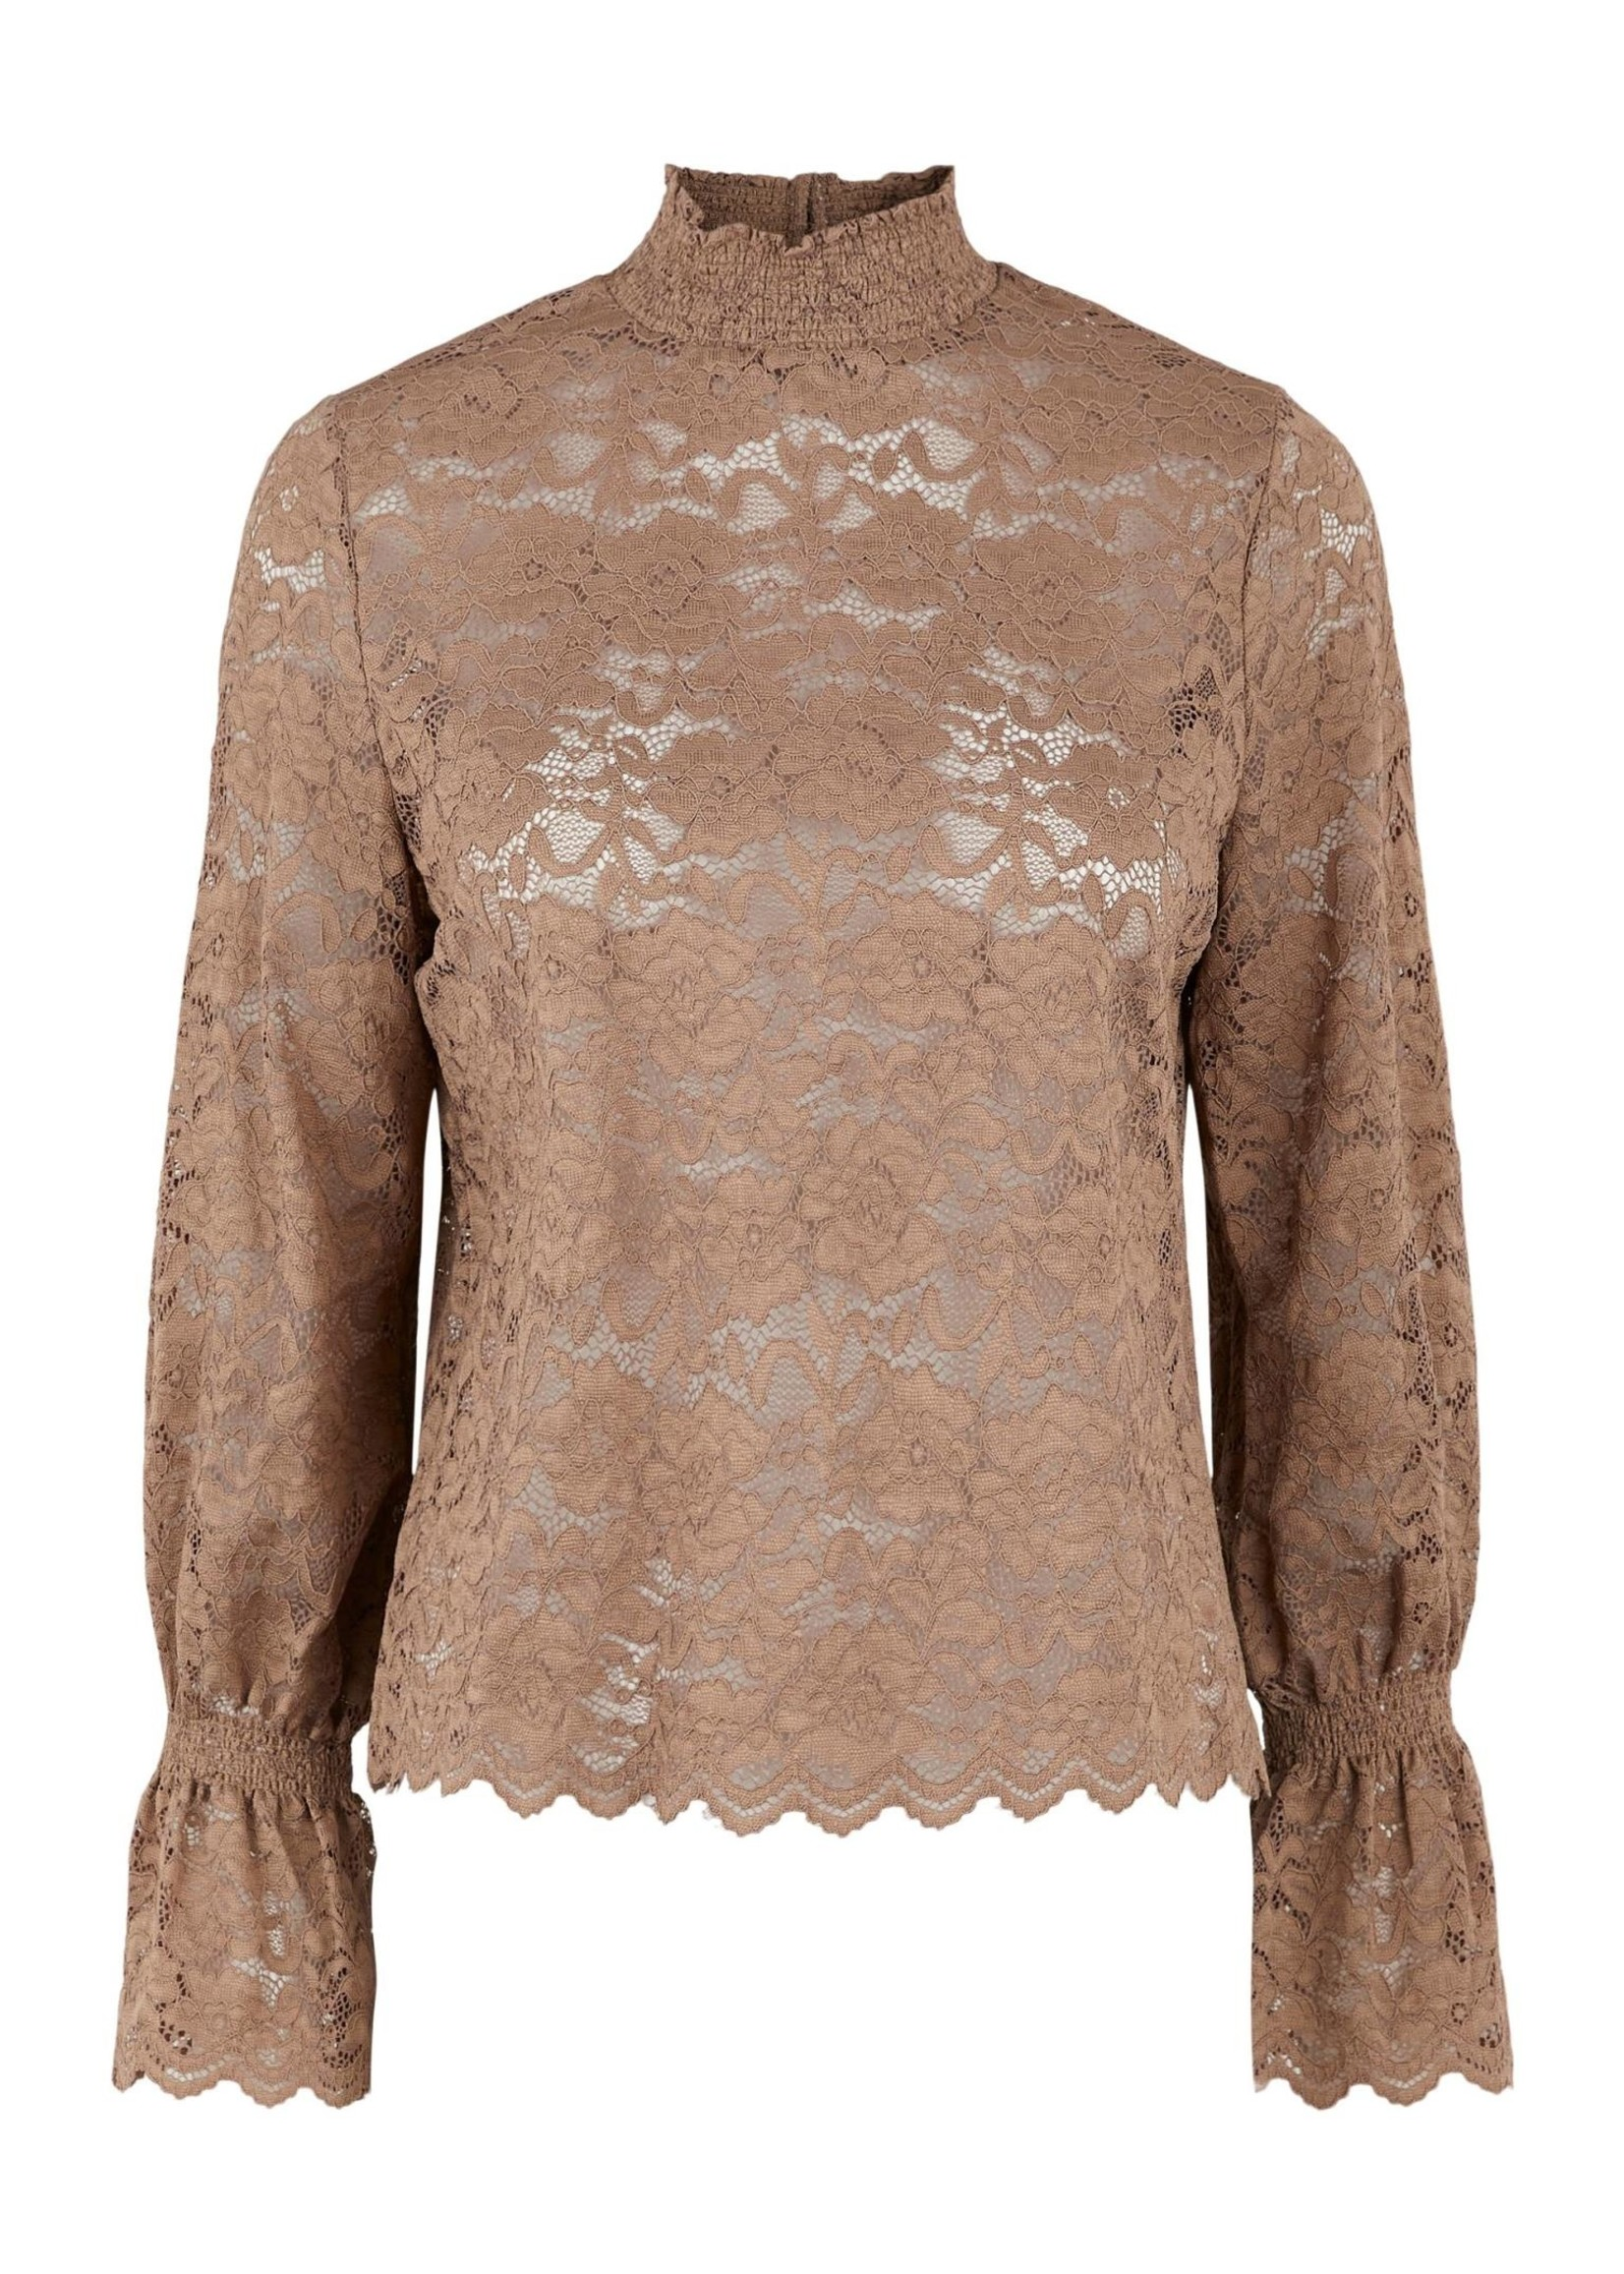 PIECES EMILY LS LACE TOP taupe gray